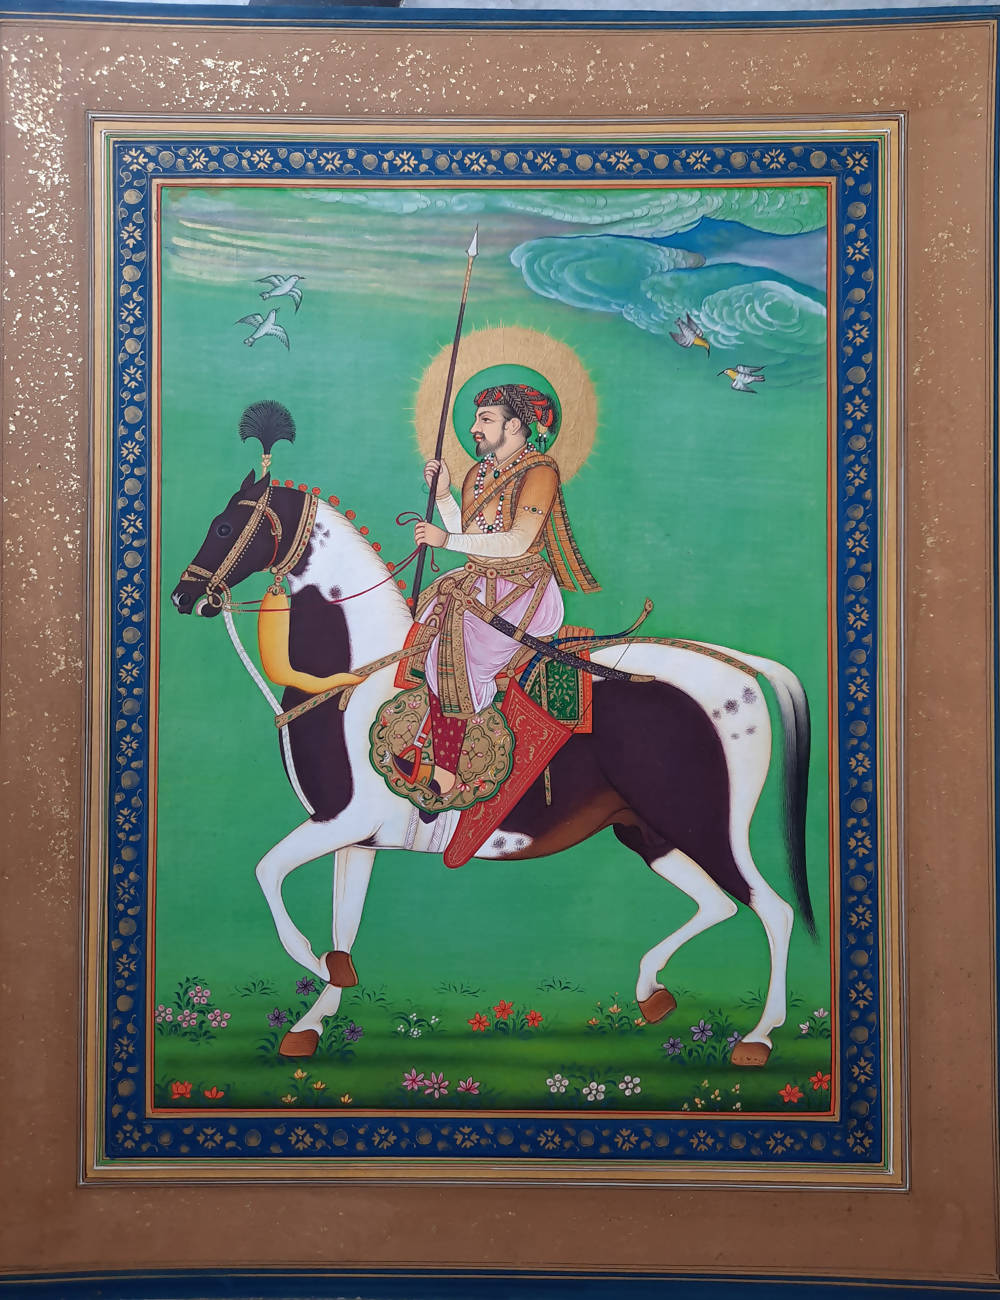 Handmade mughal miniature painting on handmade paper